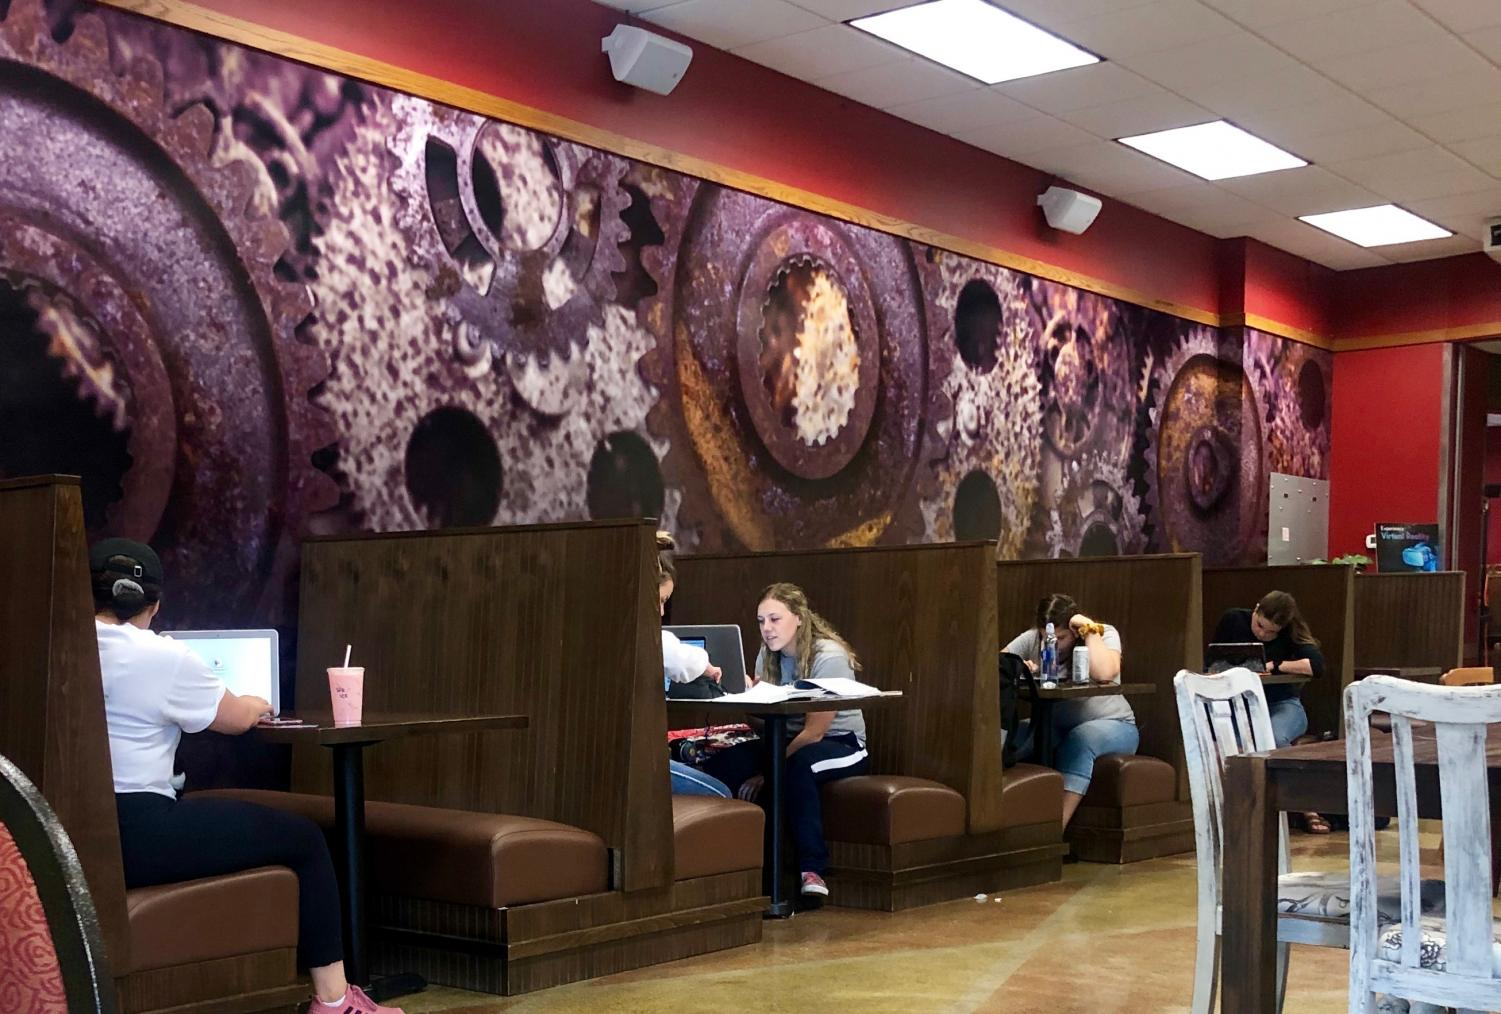 The 1891 Bistro stays open 24 hours a day to CWU students. The environment lets students relax while study- ing or socializing.